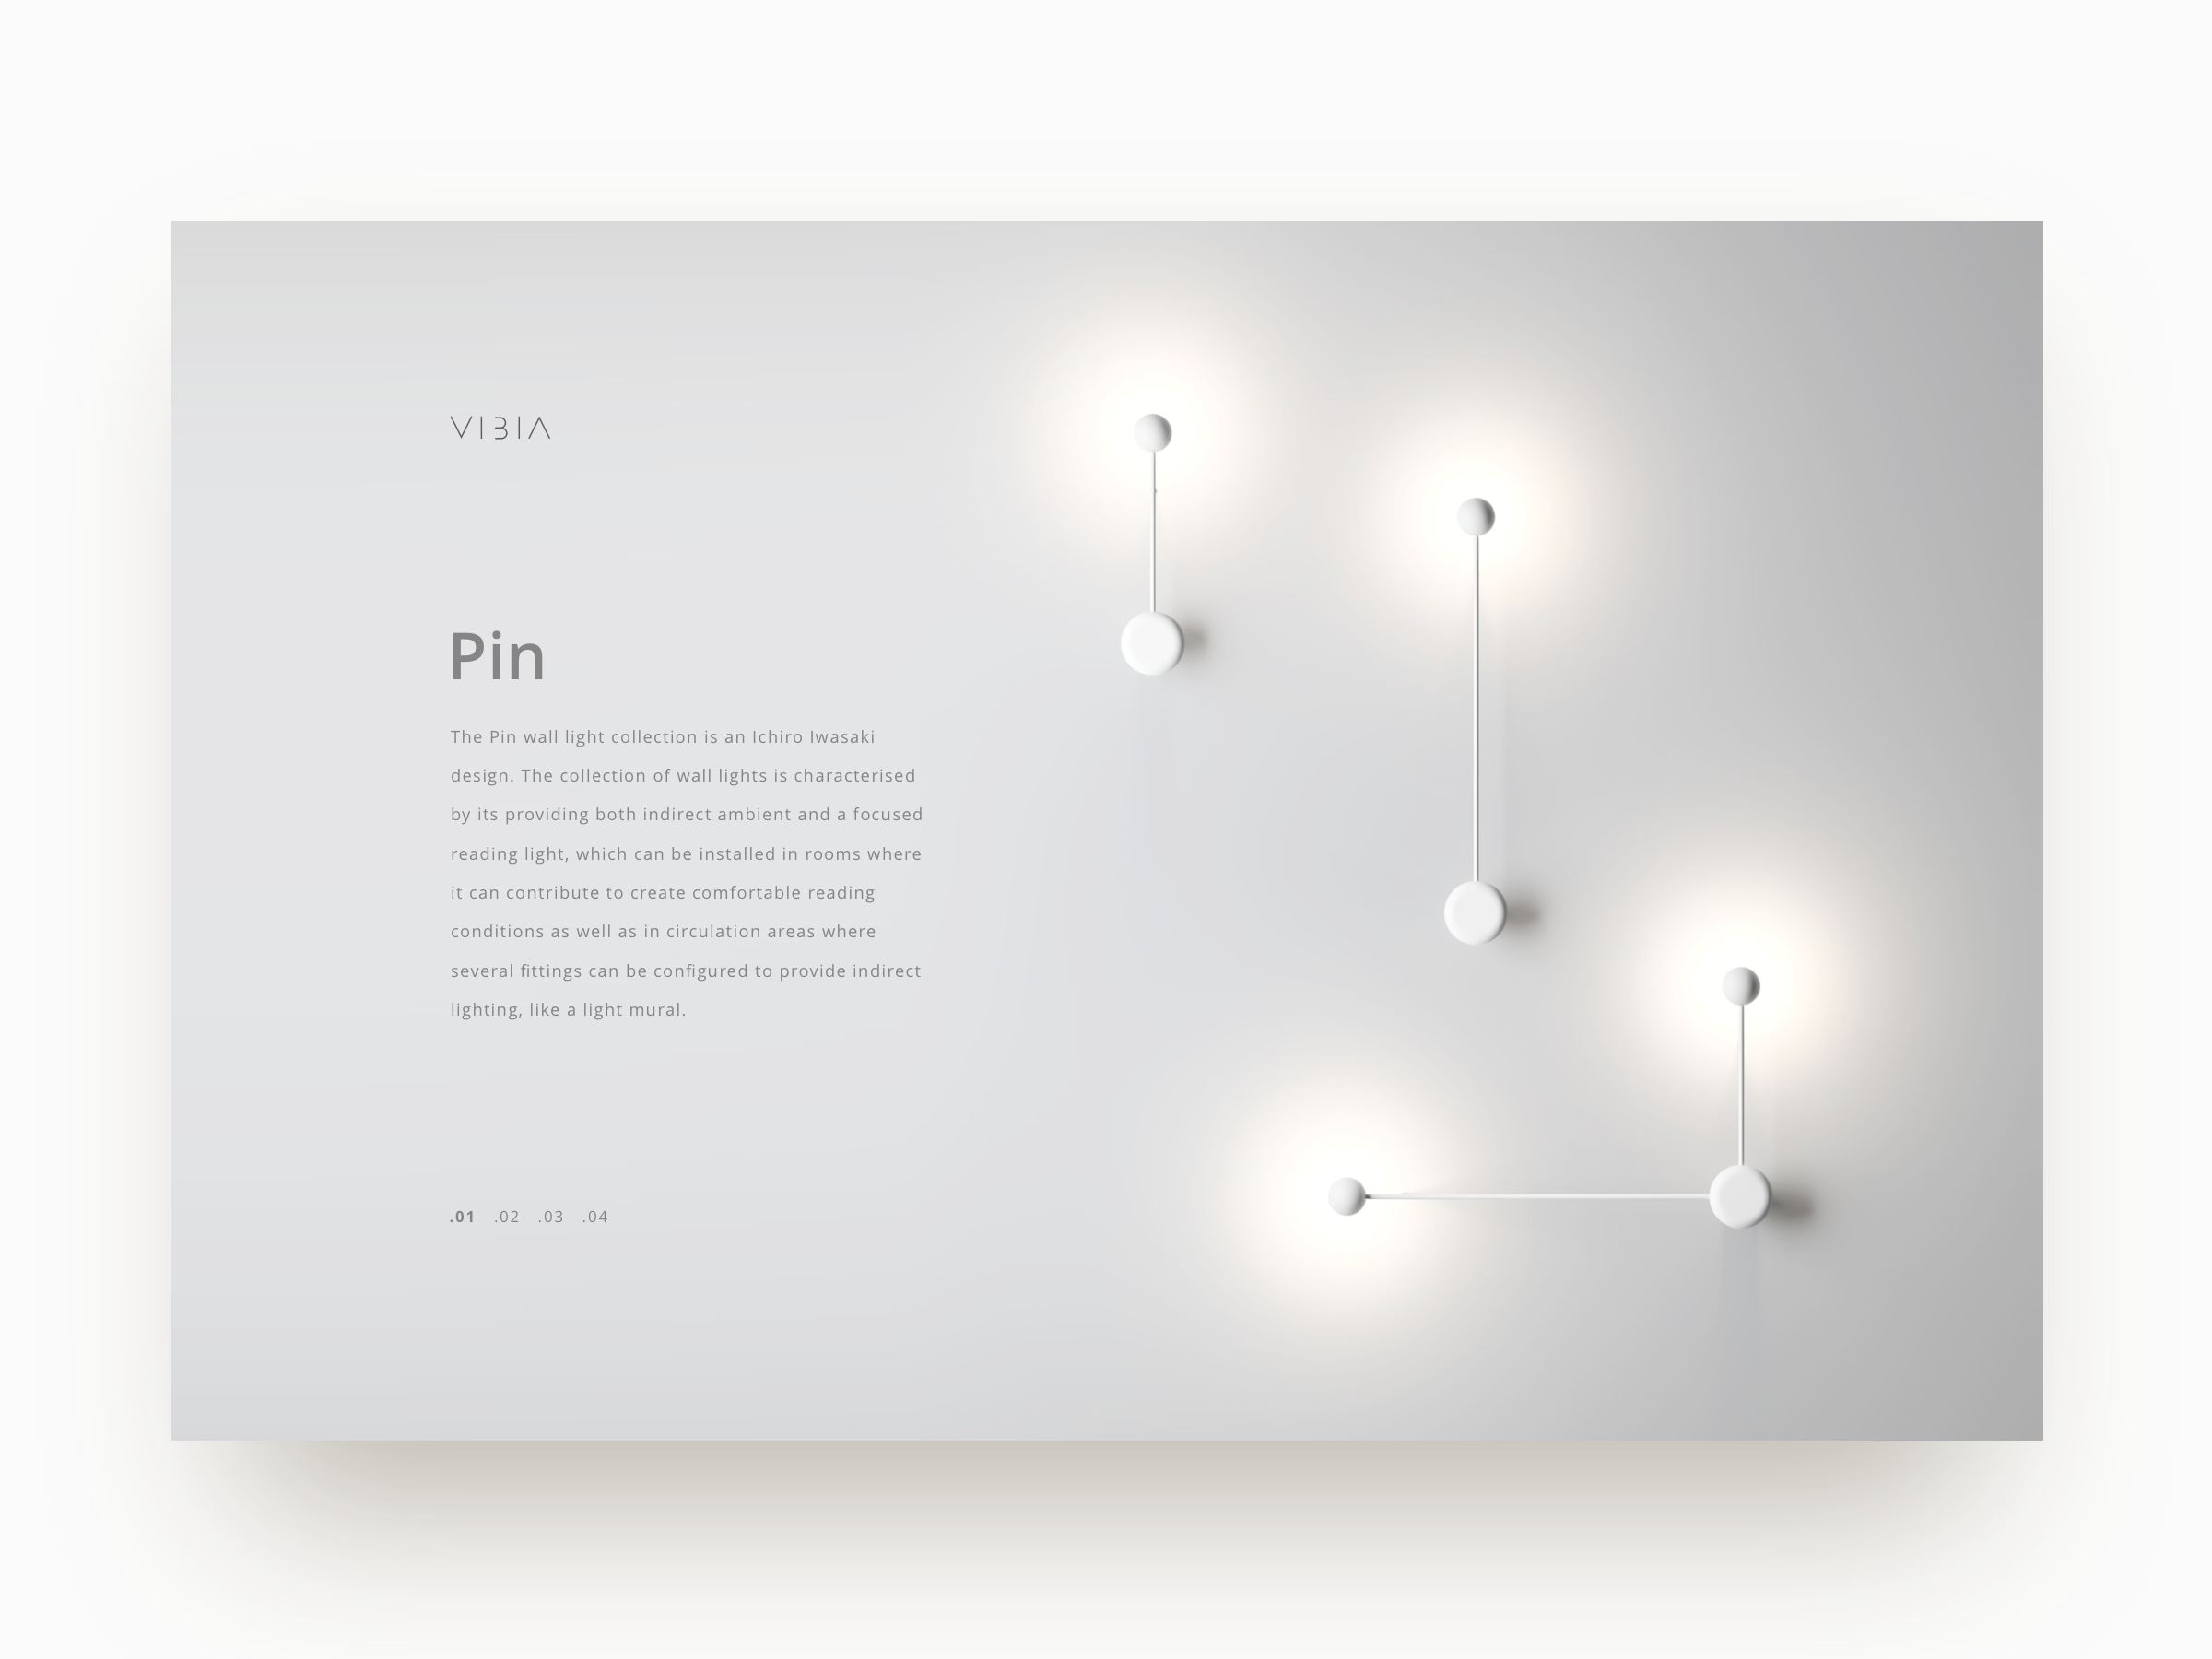 Vibia pin lamp 3x